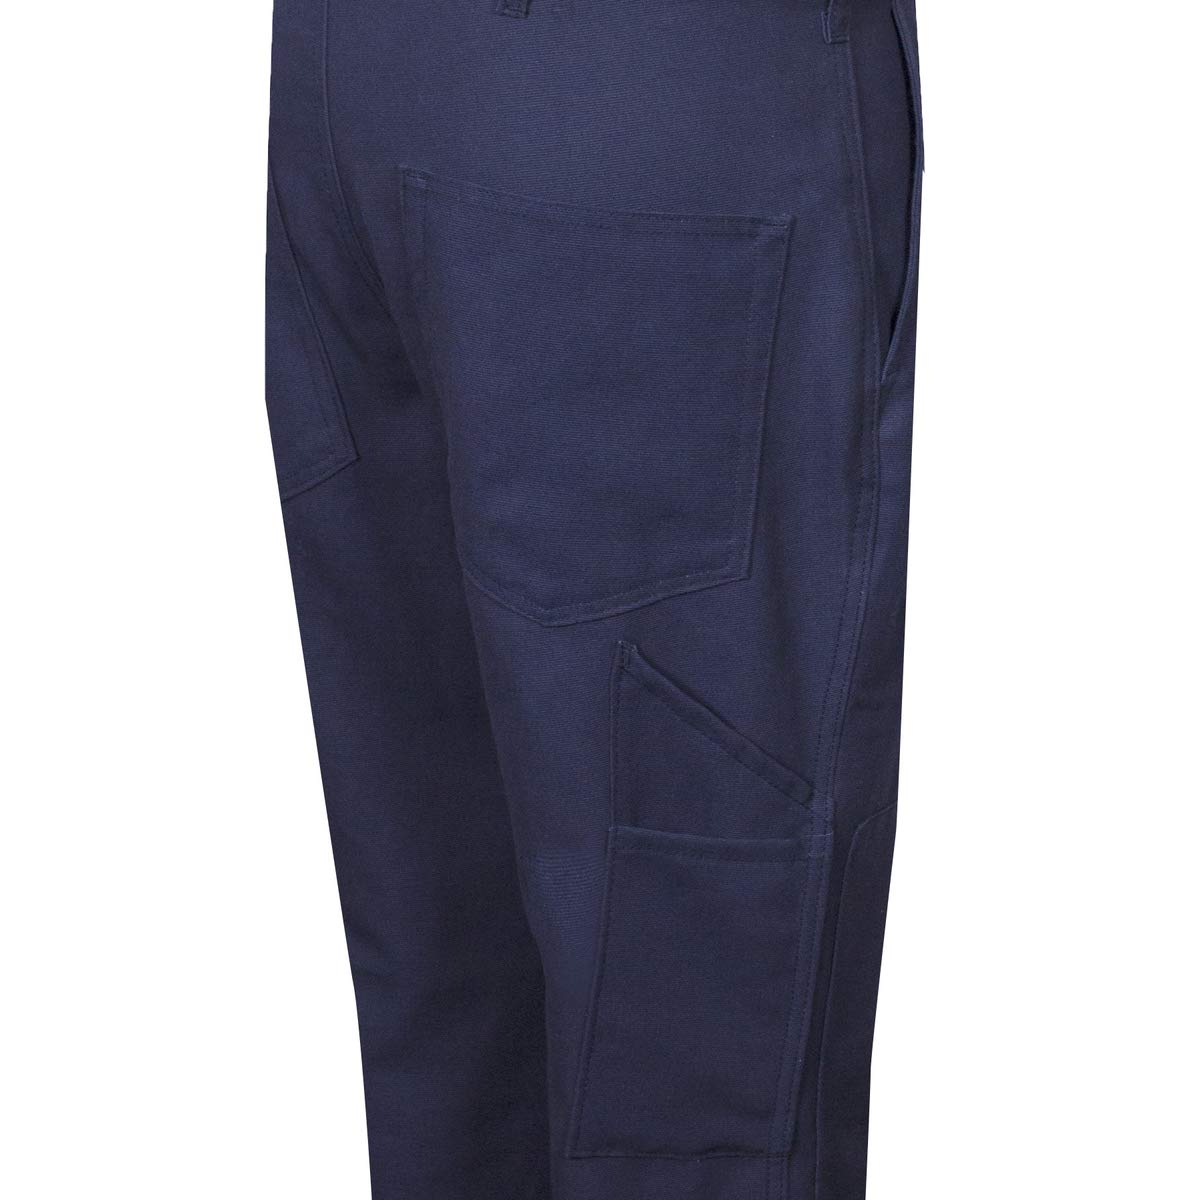 National Safety Apparel 38'' X 32'' Navy Duck 14 cal/cm Flame Resistant Pants With Zipper And Button Closure by NATIONAL SAFETY APPAREL INC (Image #1)